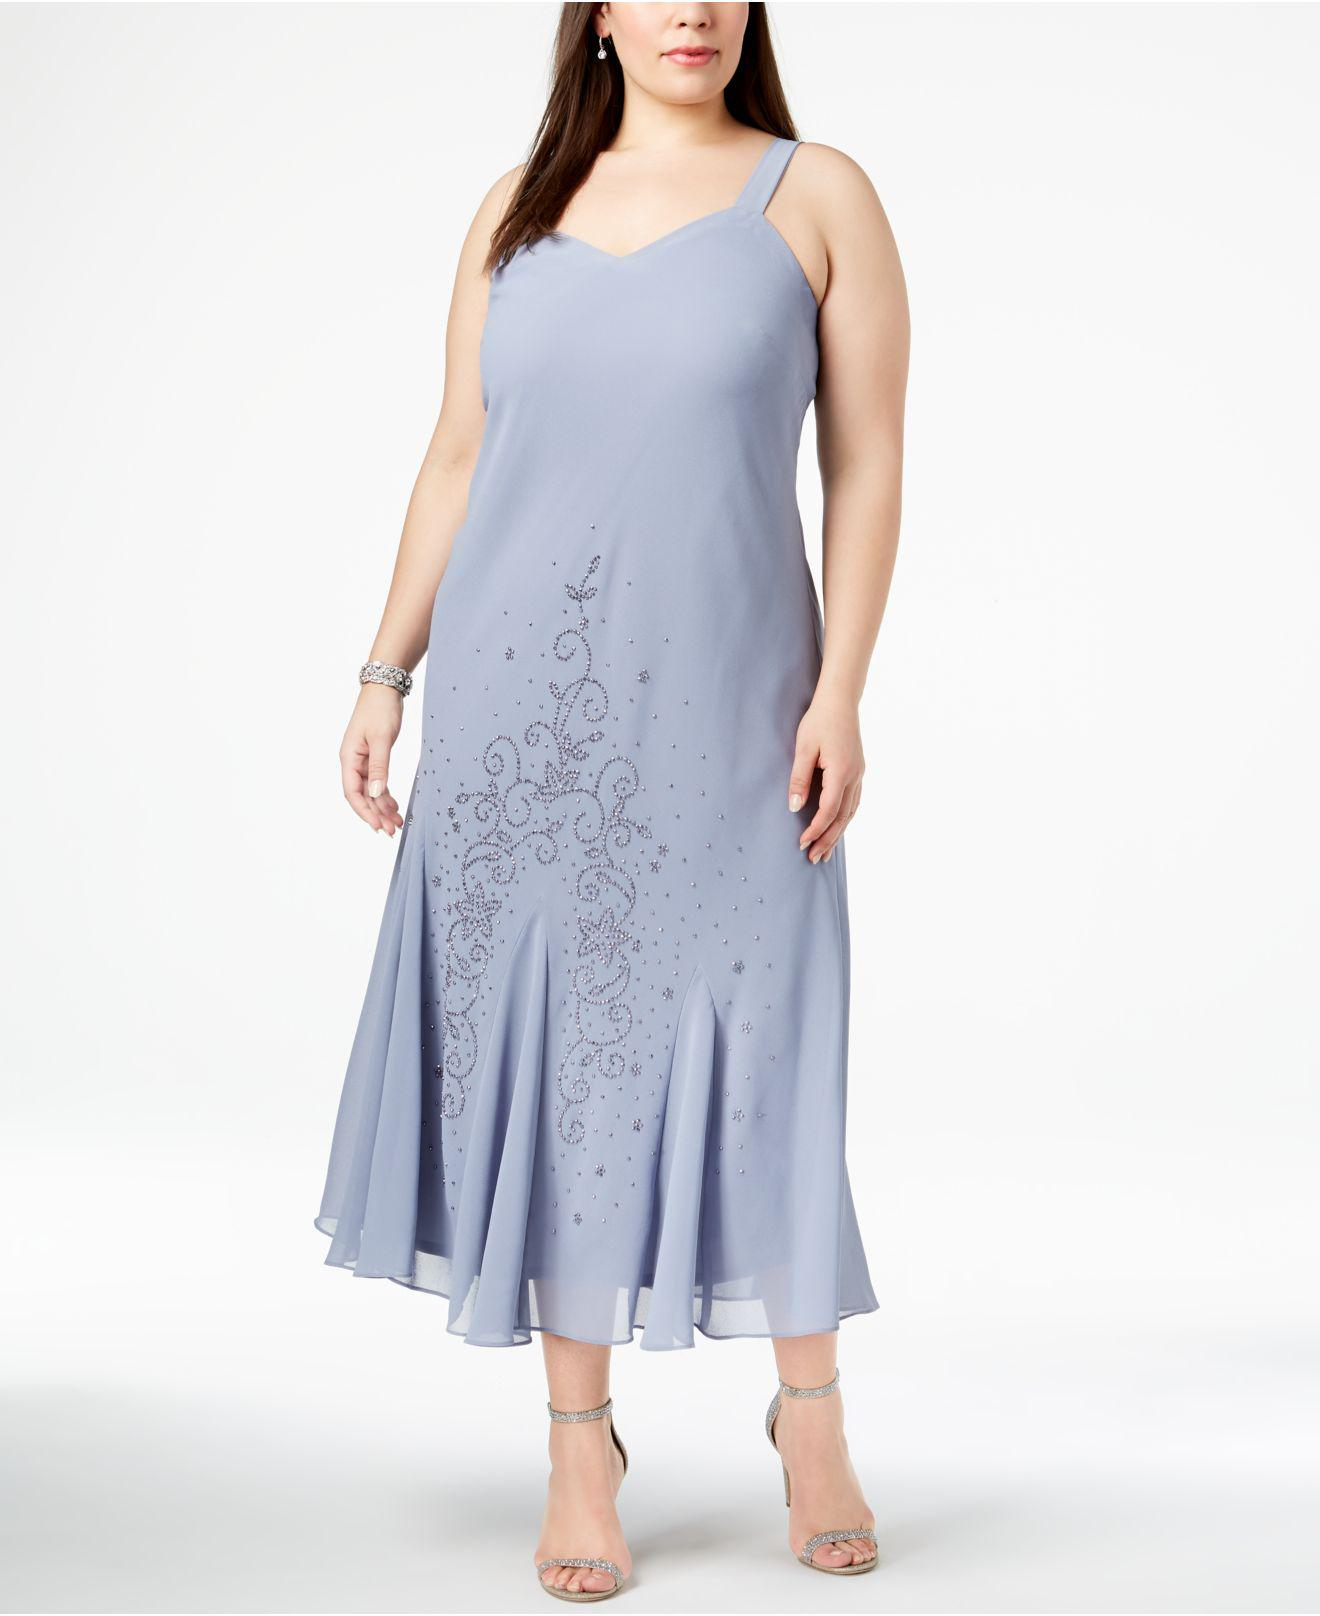 a8decf28fbf1 Lyst - R   M Richards R m Richards Plus Size Beaded V-neck Dress And Jacket  in Blue